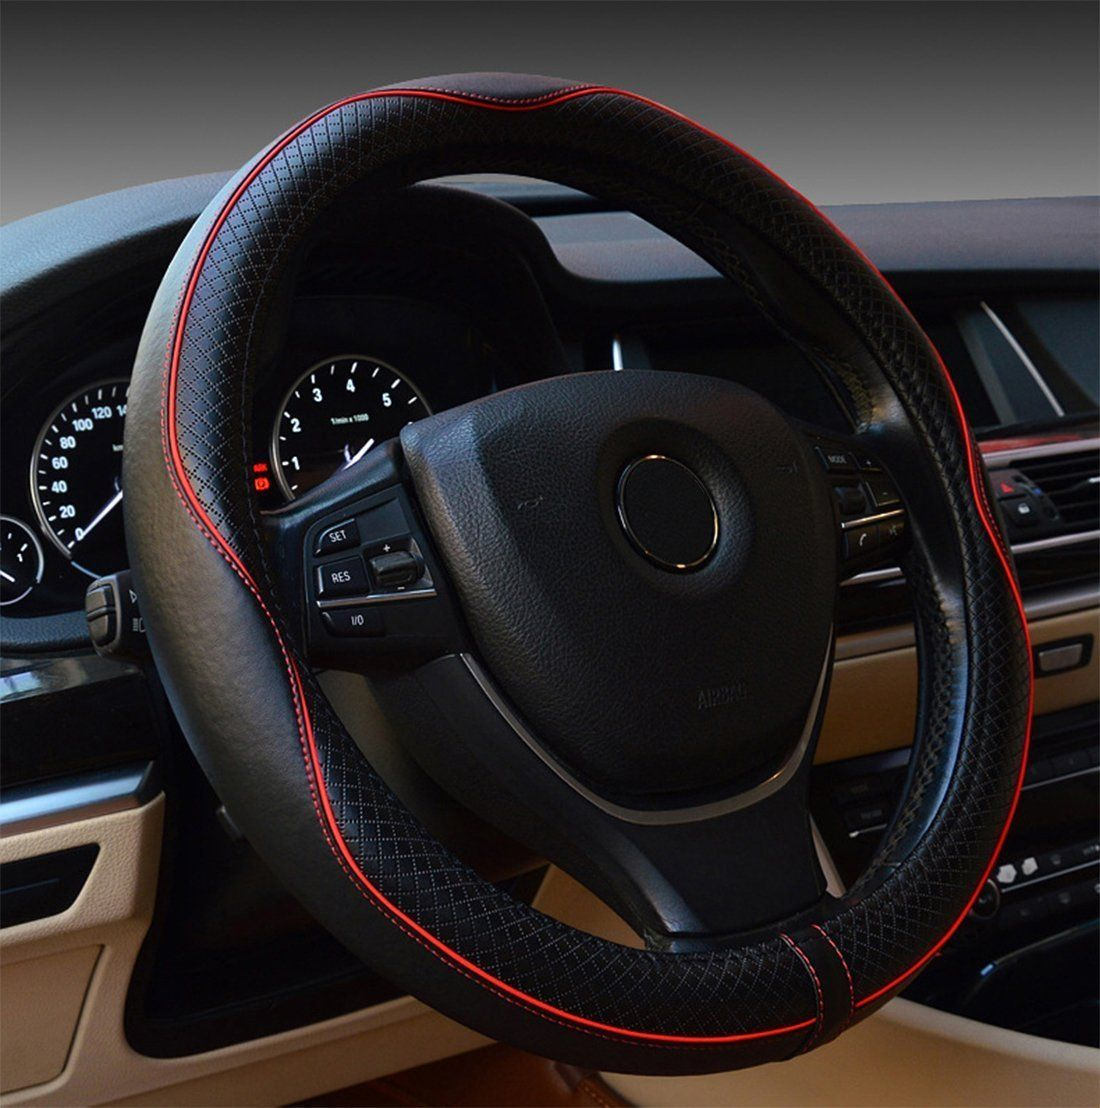 Genuine Leather Car Steering Wheel Cover Black/&Blue Breathable Anti-slip Stearing Wheel Cover Protector Universal 15 inch//38CM Fits for Auto//Truck//SUV//Van